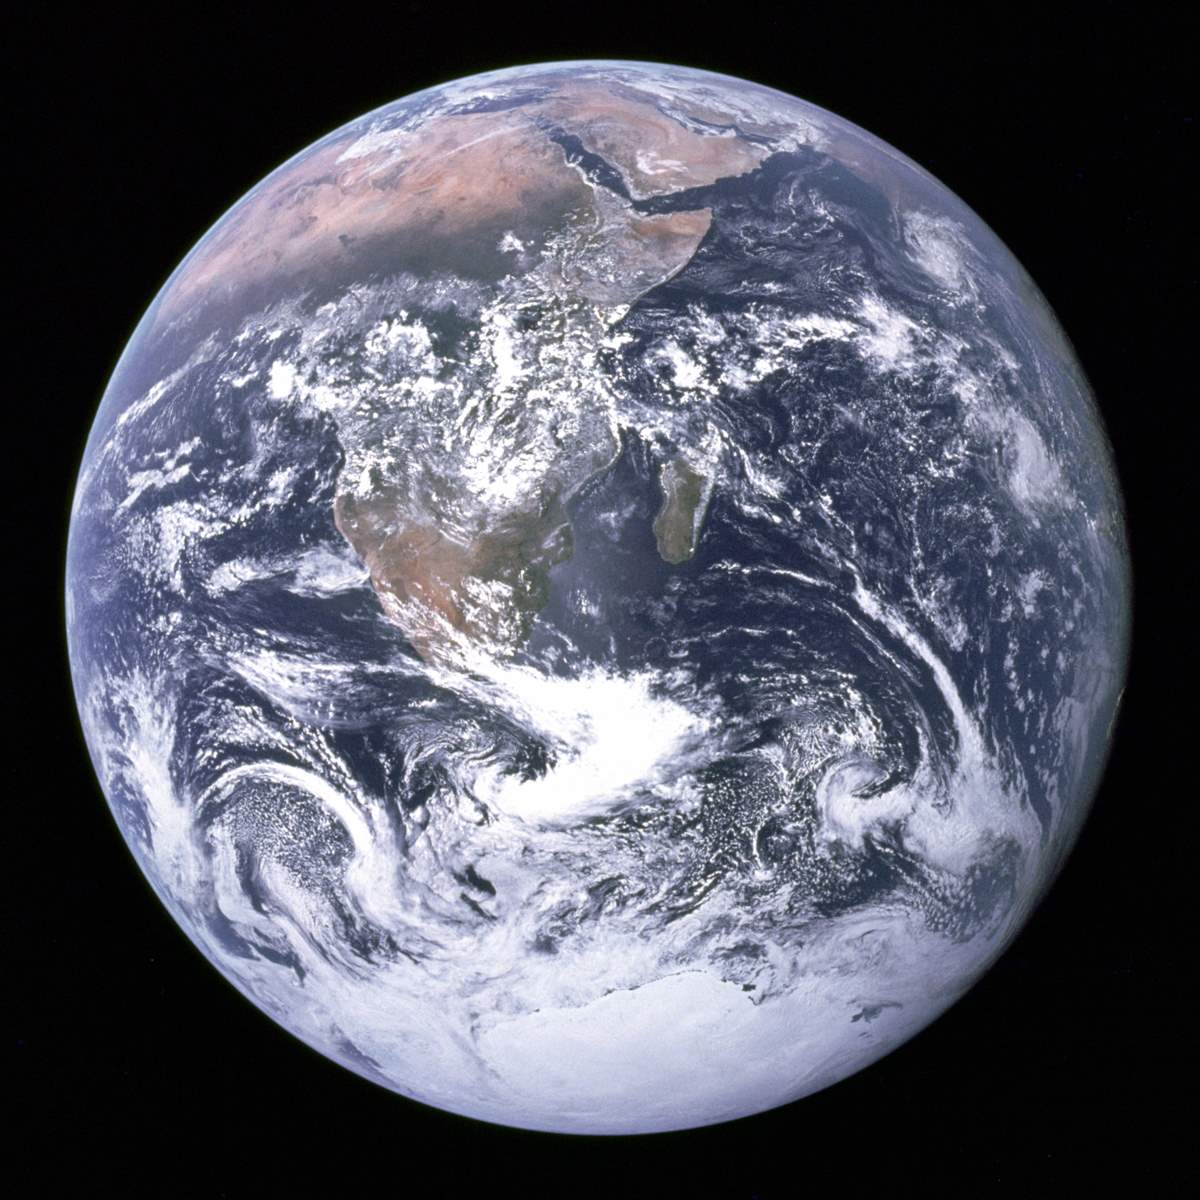 Most Iconic Photos of Earth from Space: The Blue Marble